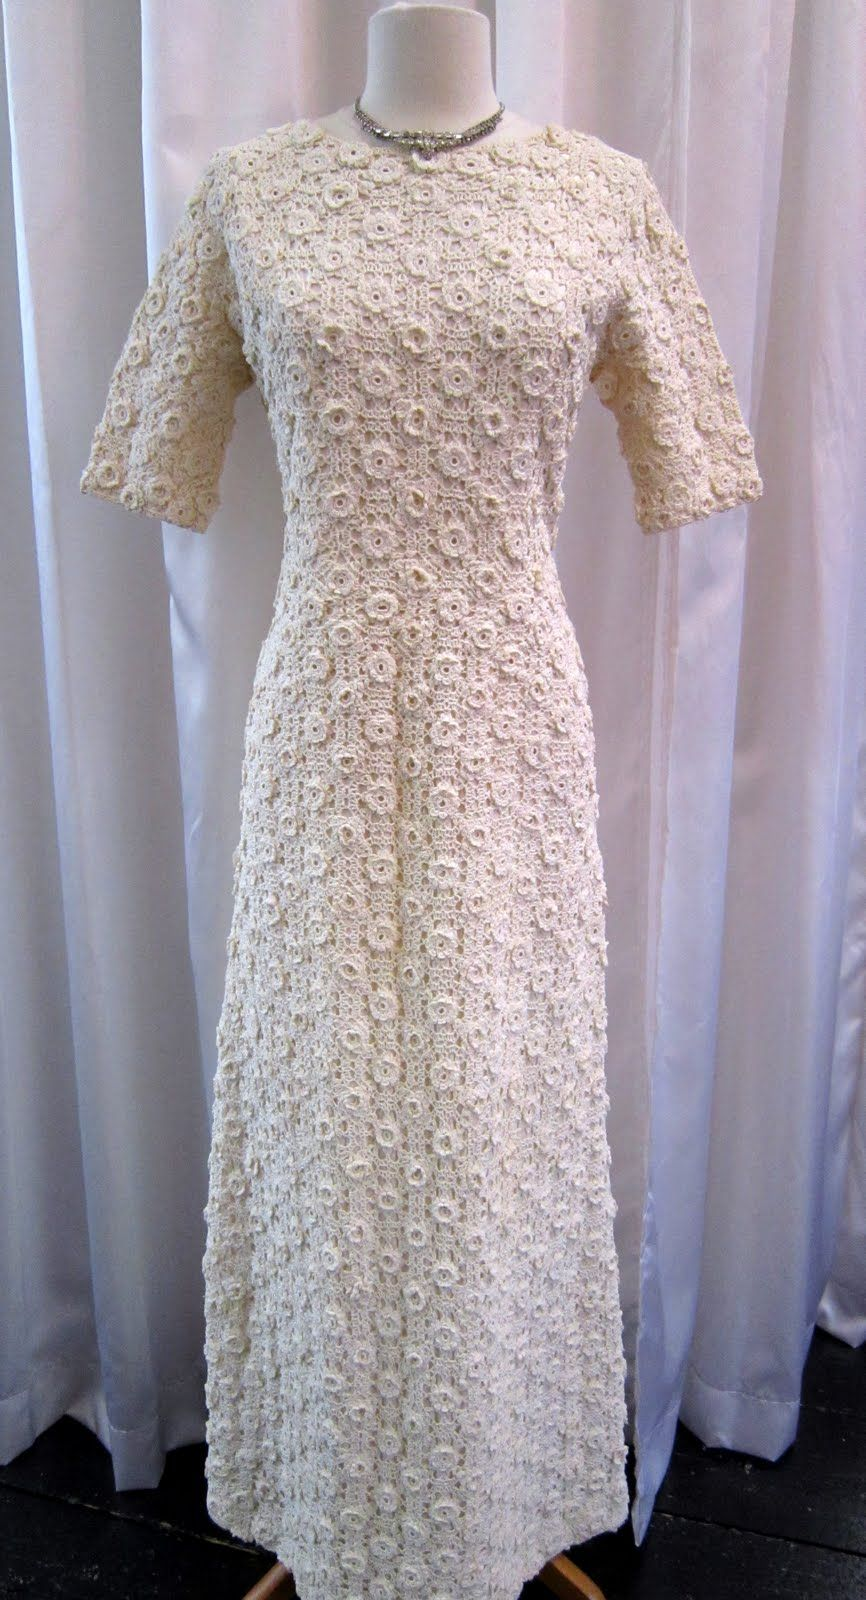 s Sybil Connolly cream crochet wedding gown I like the actual